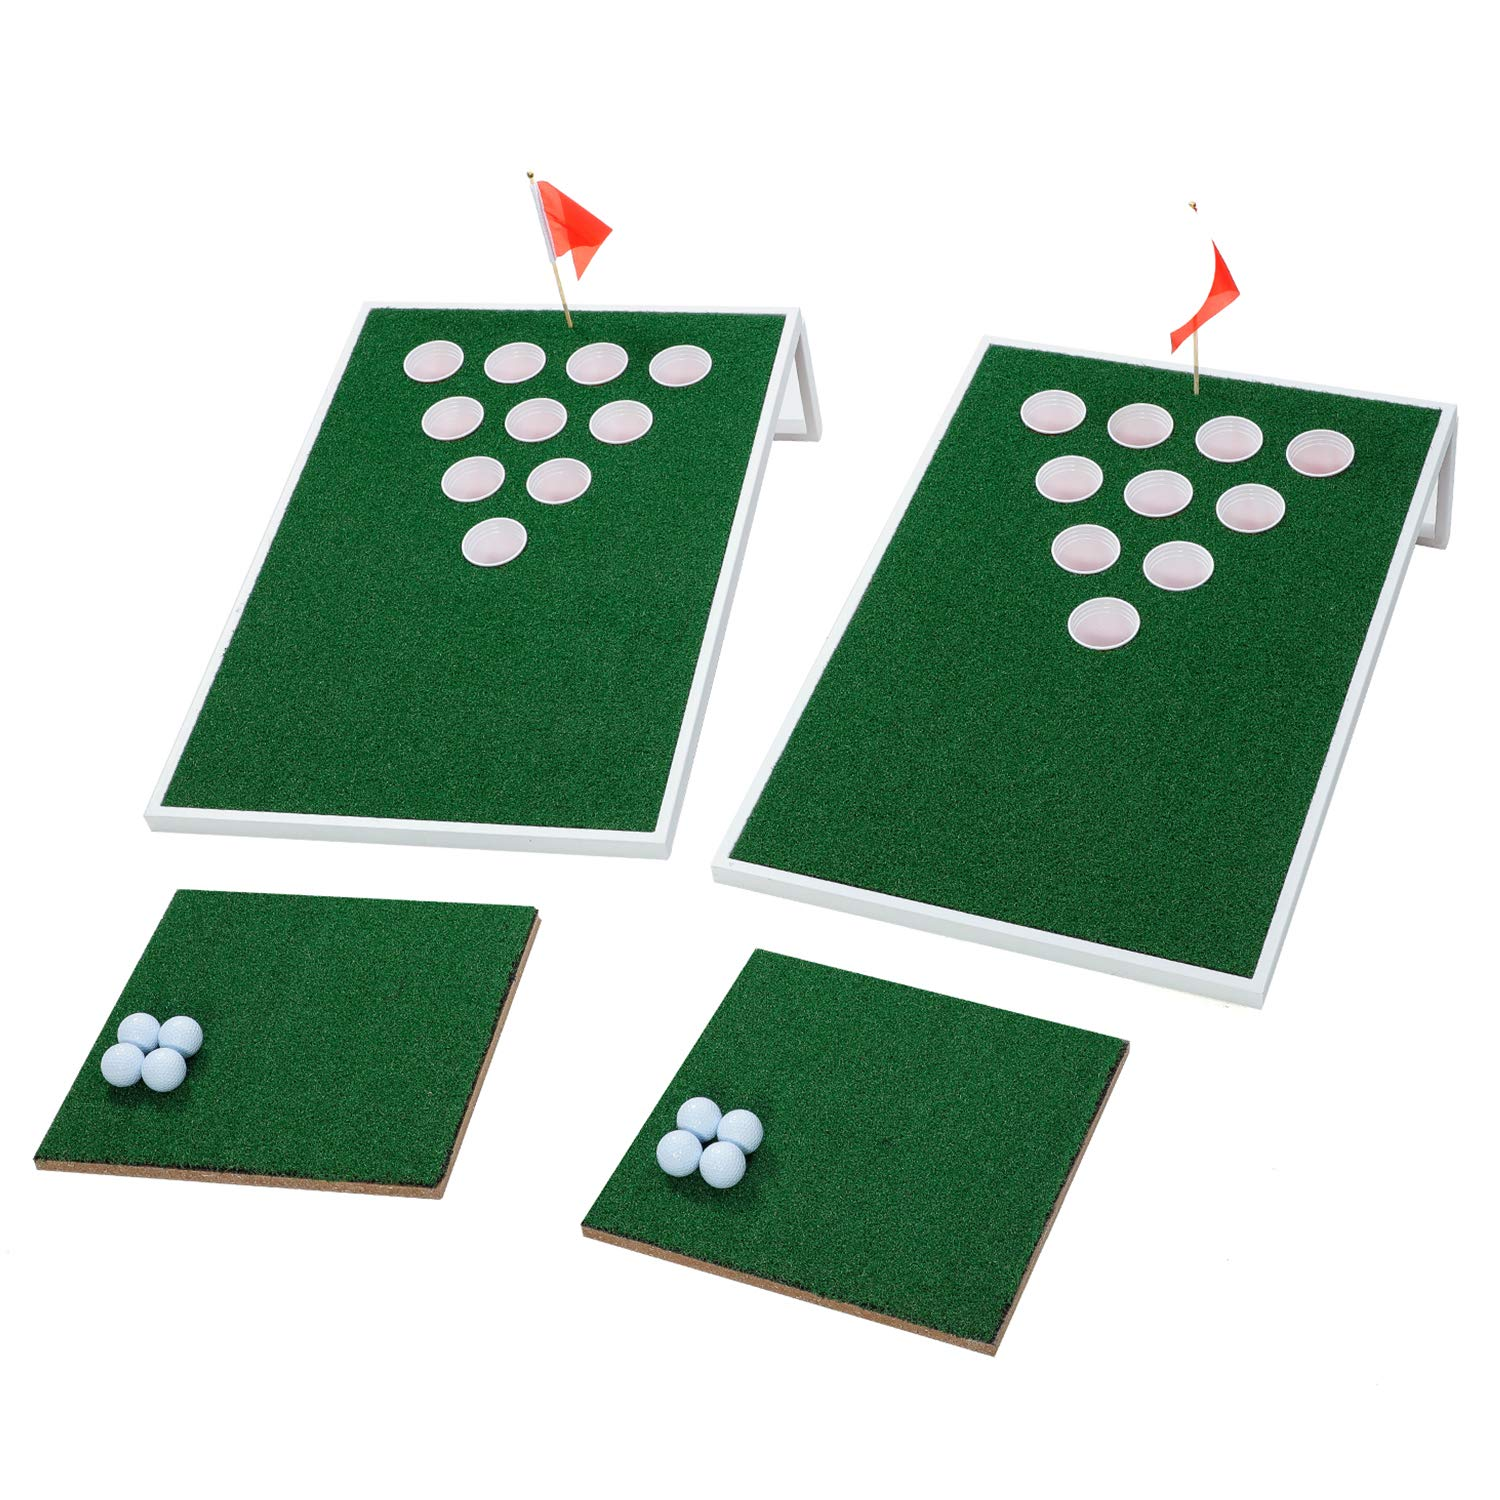 OOFIT Golf Meet Beer Pong Chipping Target Game Set with Chipping Mats, White